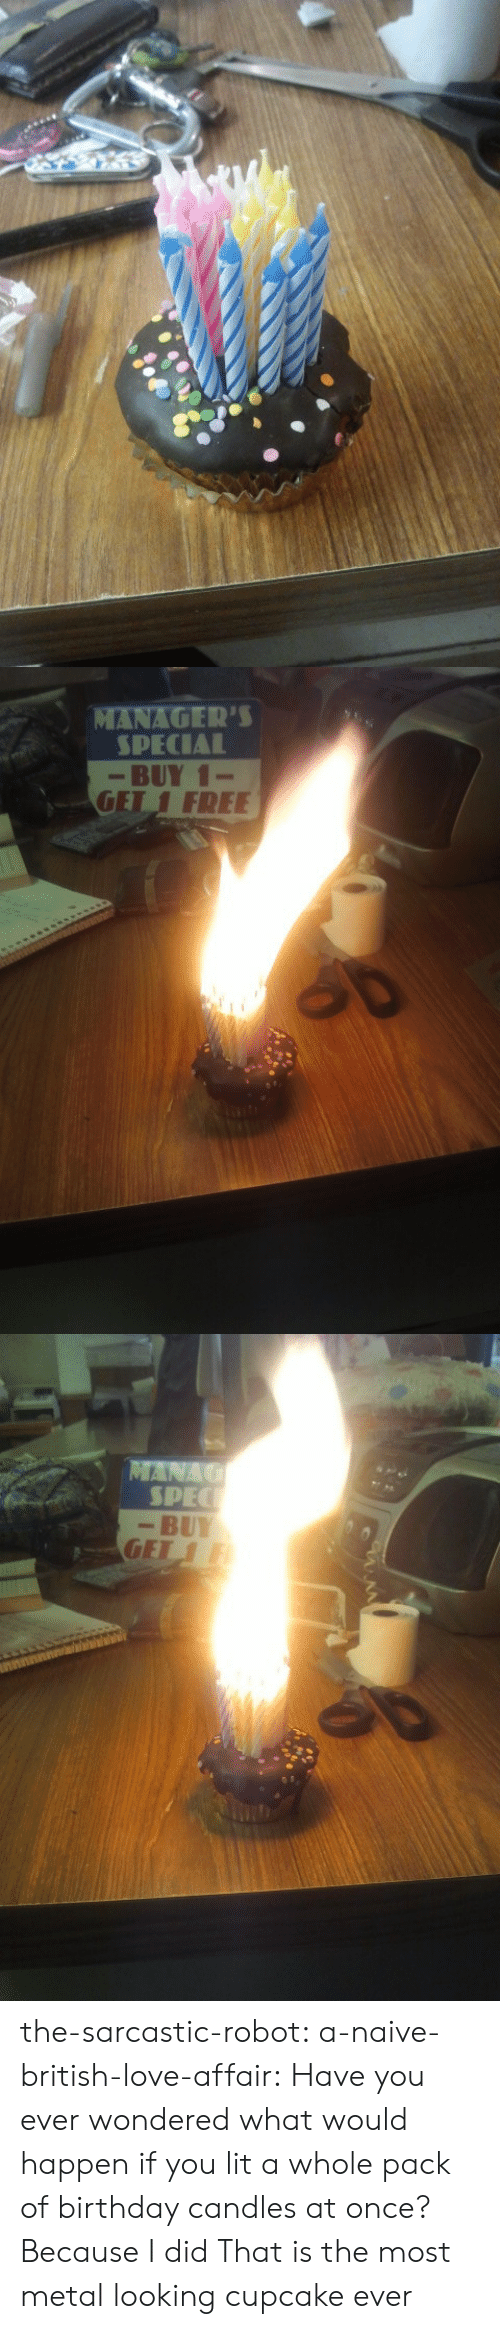 Birthday, Lit, and Love: ·  ATNAGER'S  SPECIAL  -BUY 1-  GET 1 FREE   -BUY the-sarcastic-robot:  a-naive-british-love-affair:  Have you ever wondered what would happen if you lit a whole pack of birthday candles at once? Because I did  That is the most metal looking cupcake ever